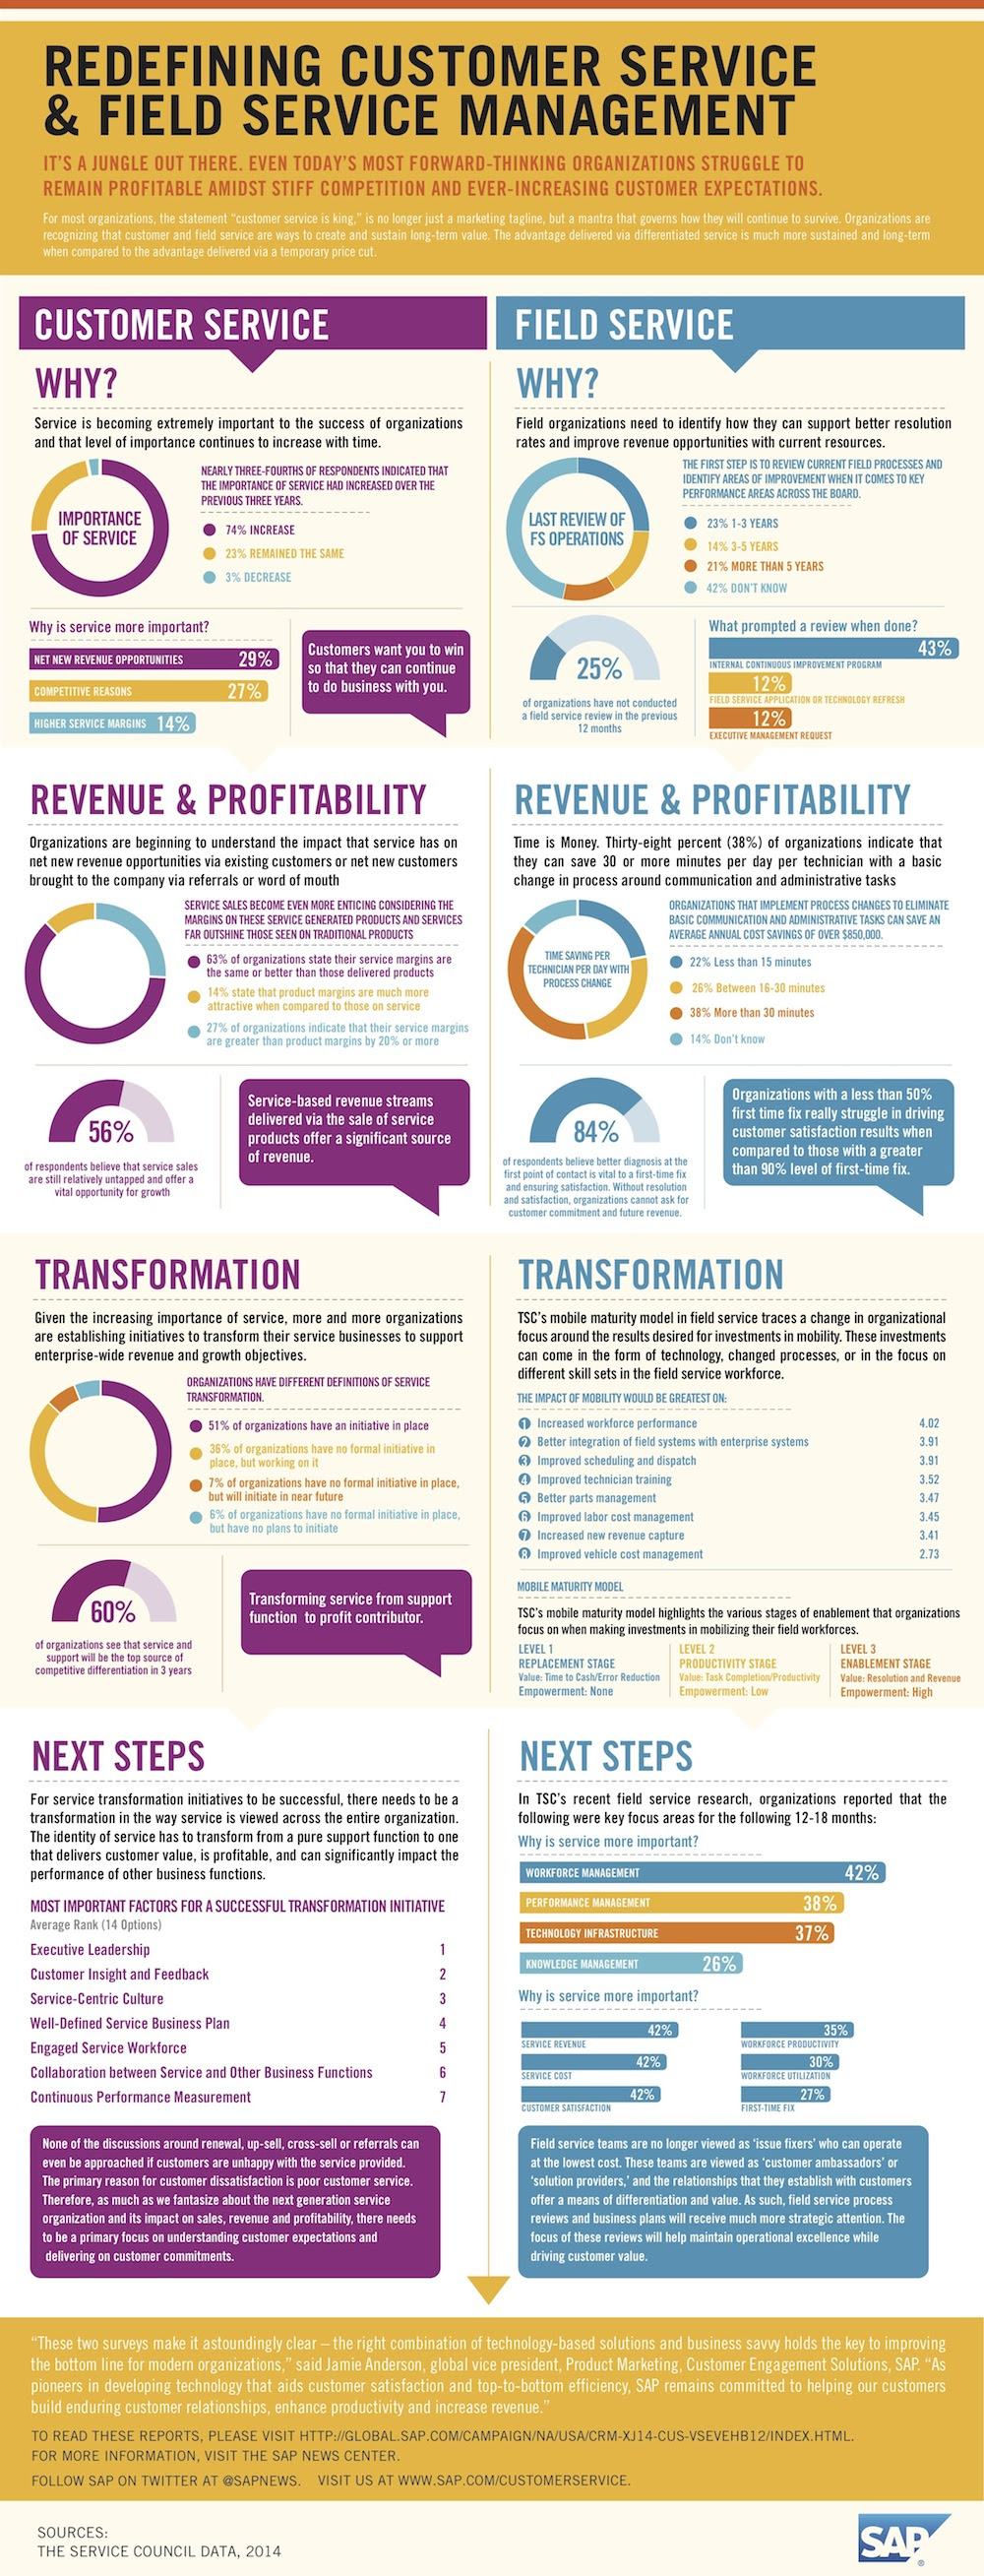 Infographic: Redefining Customer Service And Field Service Management